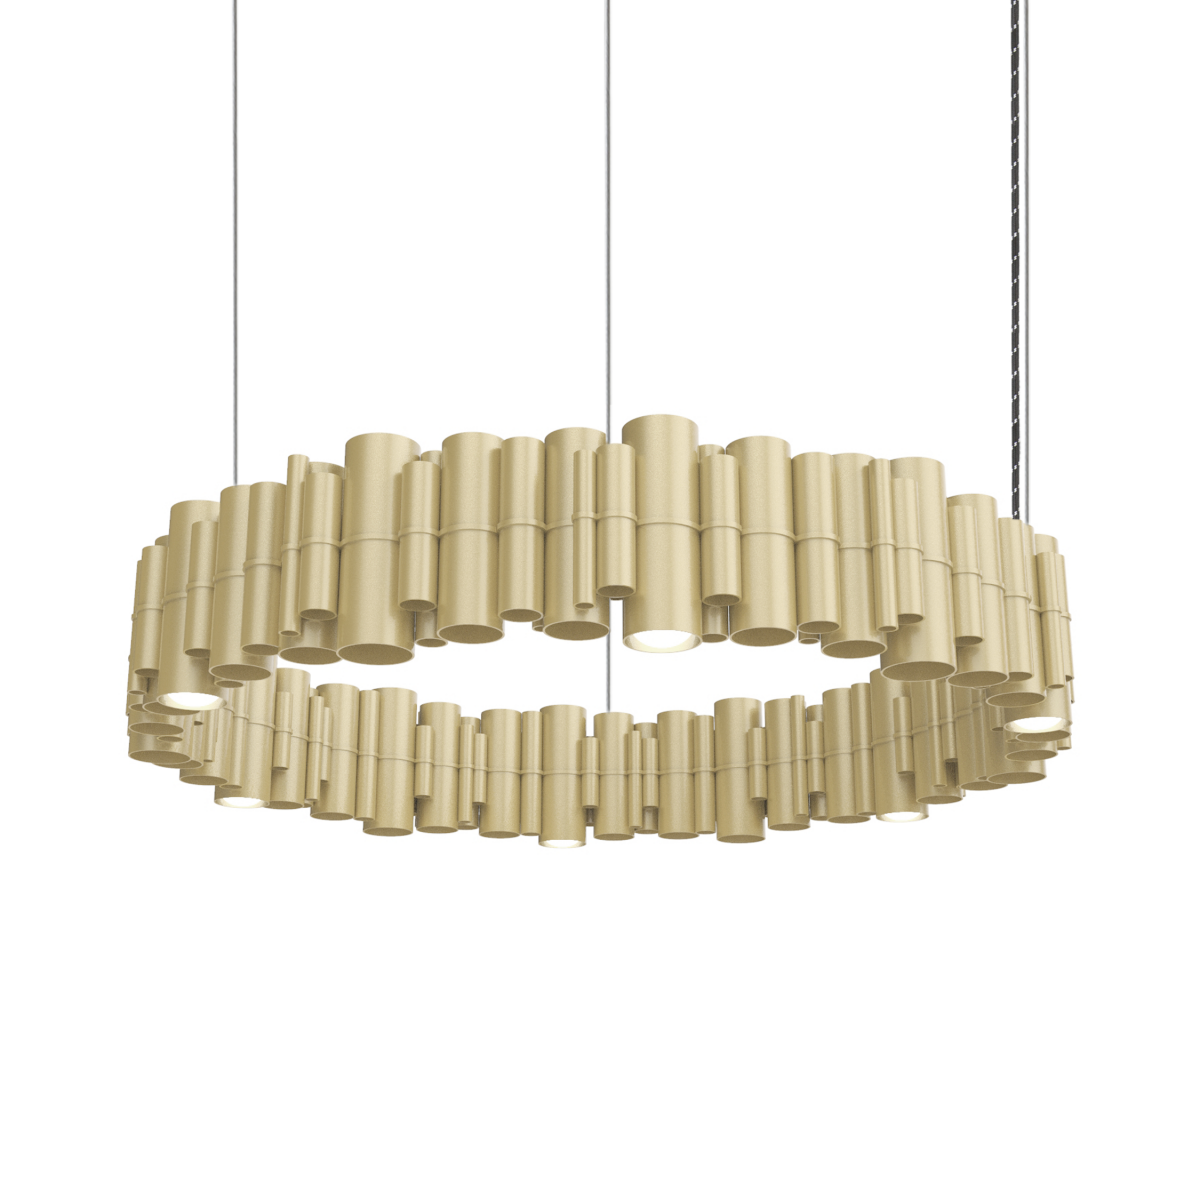 JSPR Cityscapes Suburban ON Champagne Hanglamp